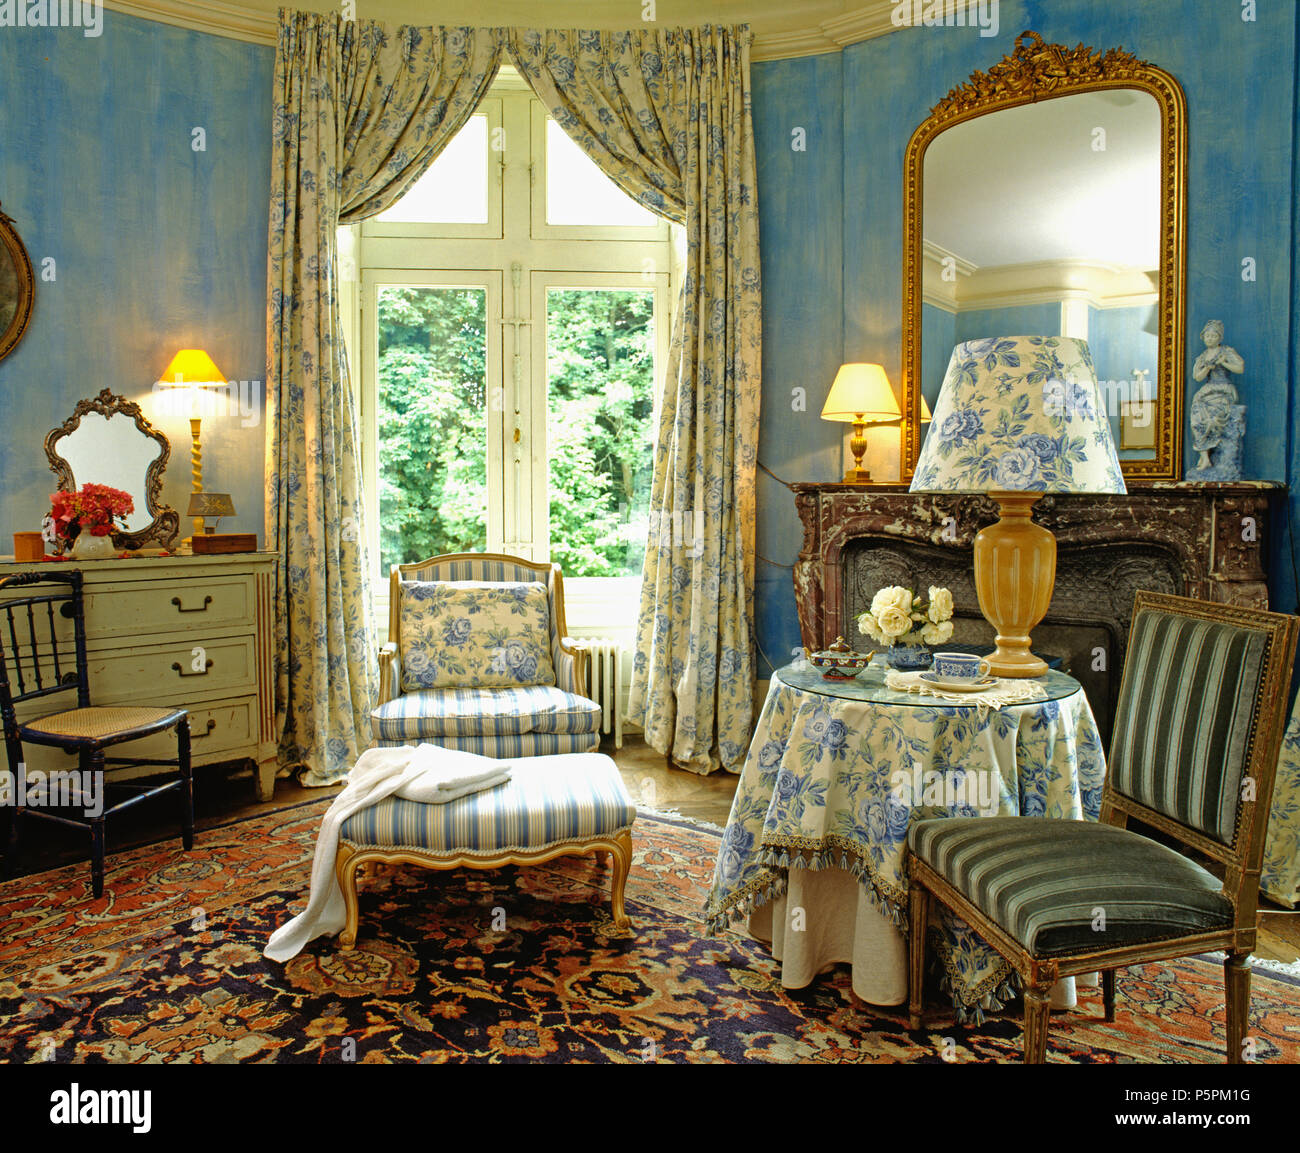 Co-ordinating blue+white curtains with tablecloth and ...